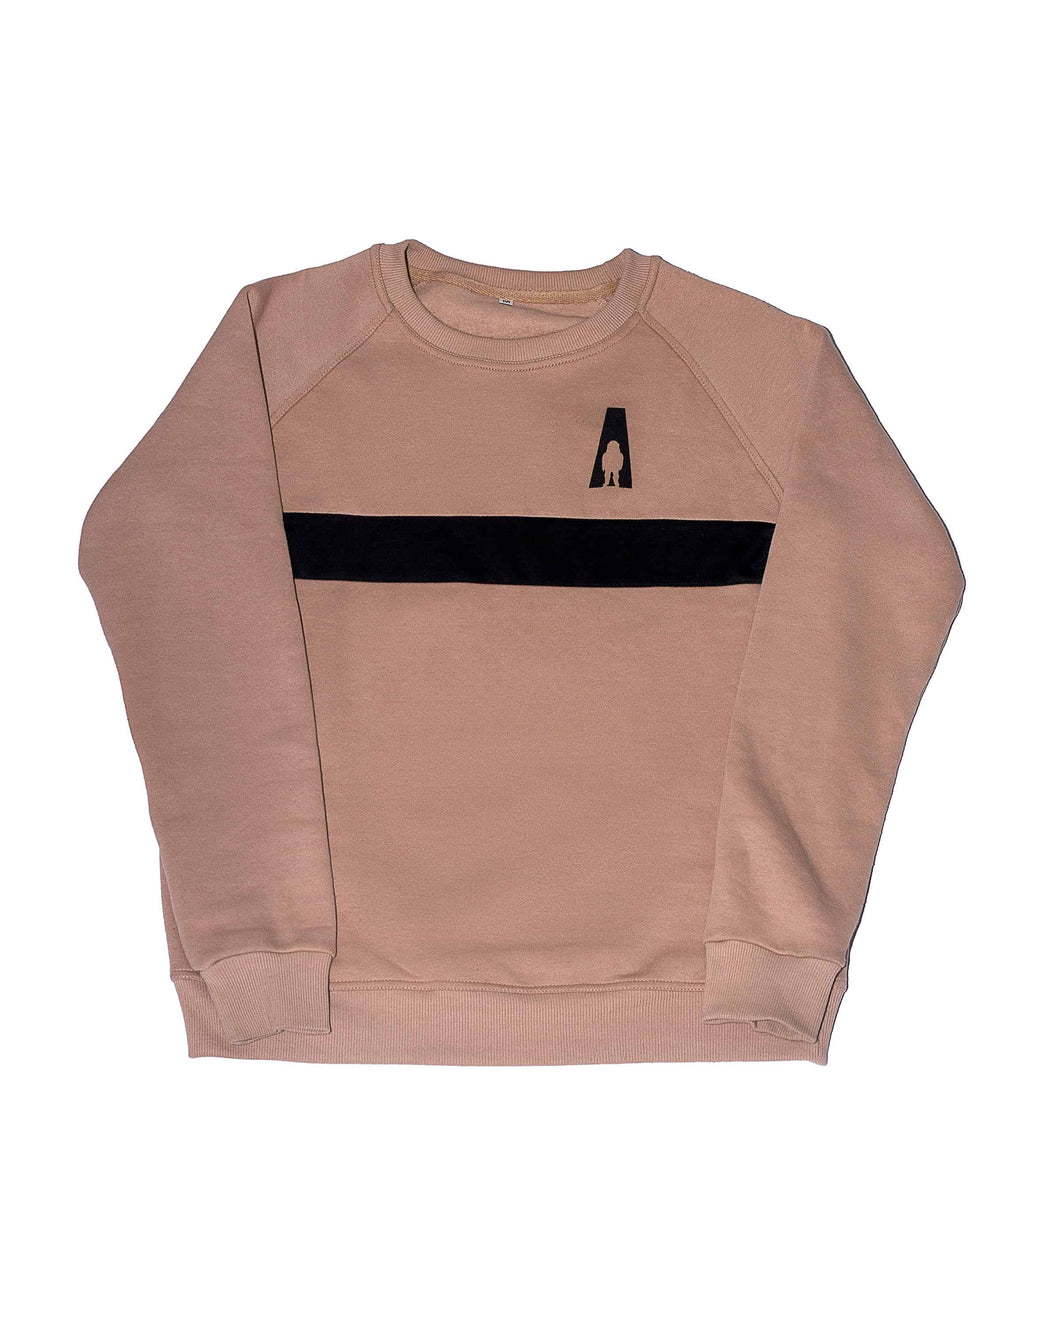 Torque Crew Neck | Tan - Apollo Originals